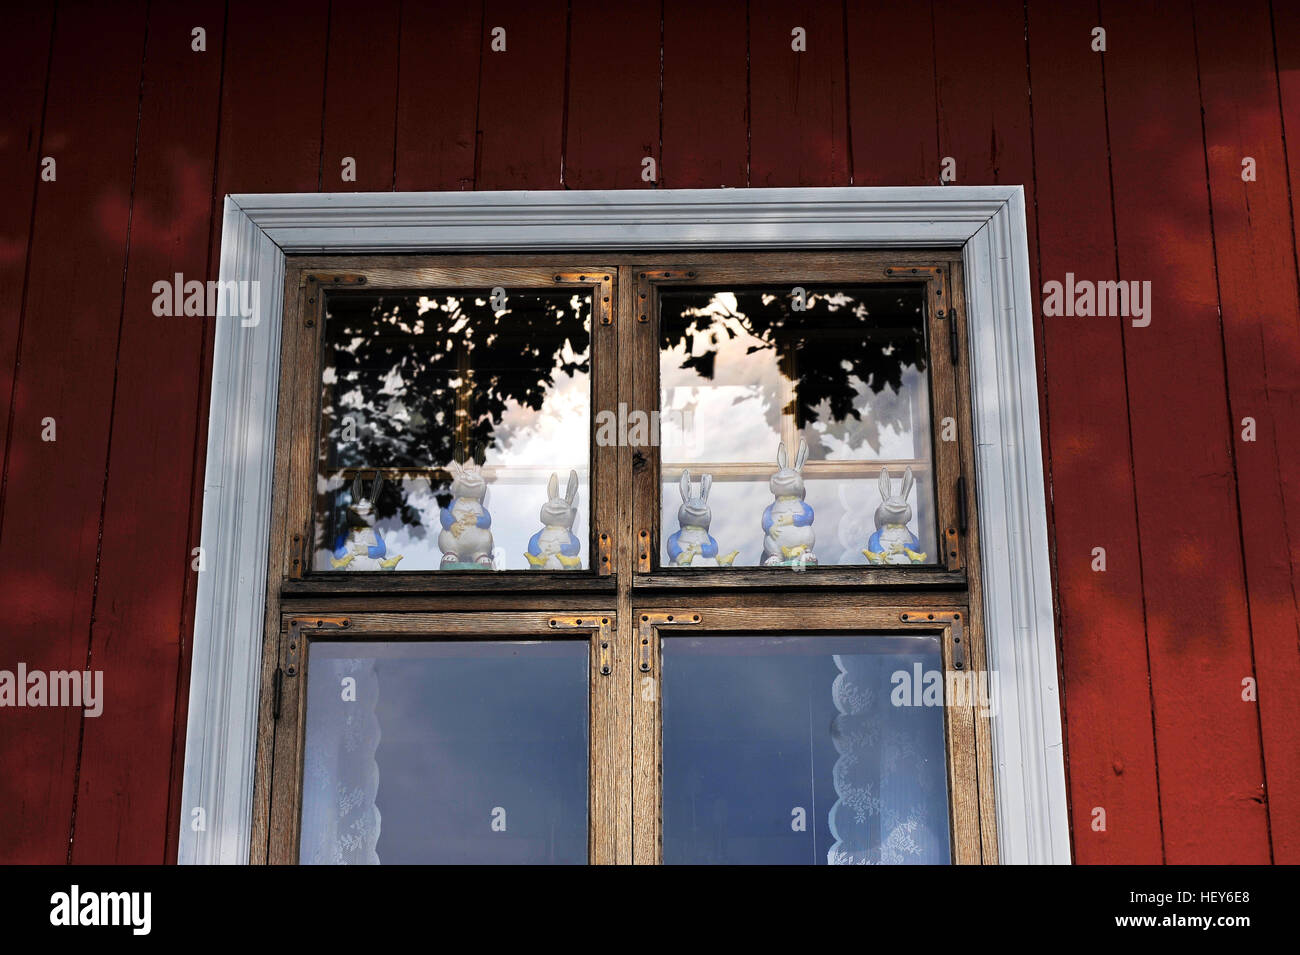 Finish wooden house in Turku, Finland - Stock Image